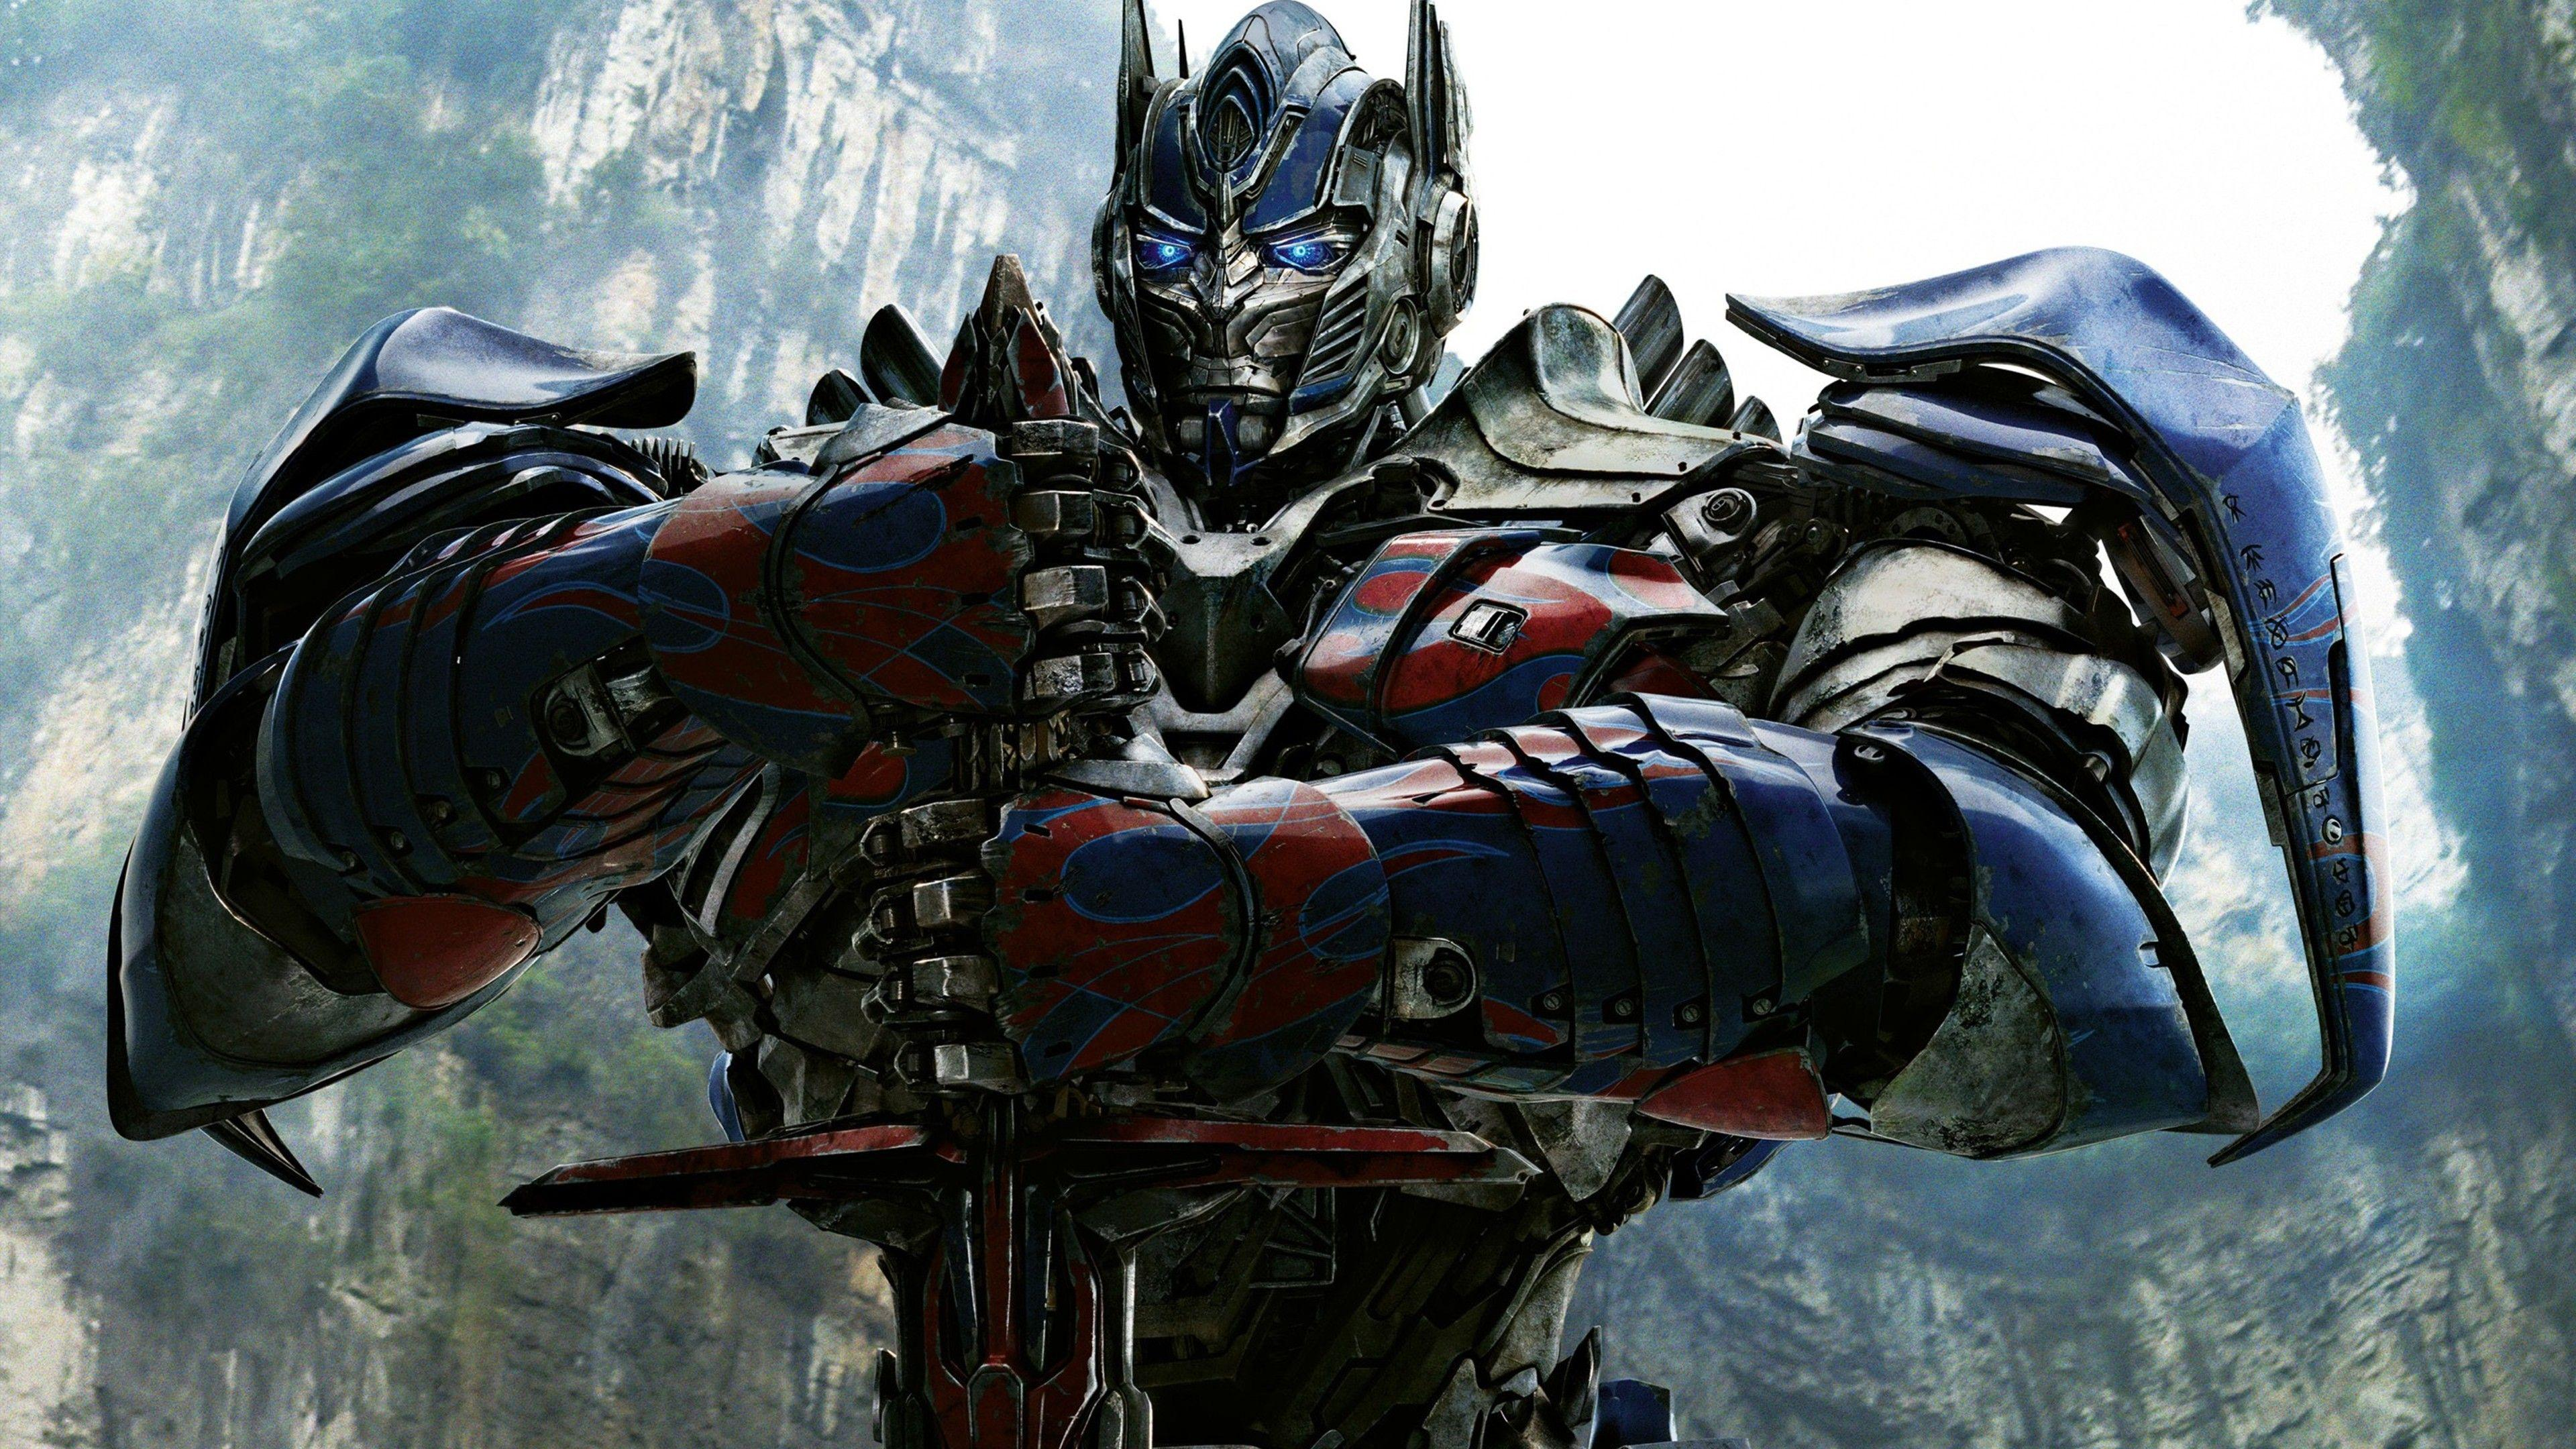 optimus prime wallpaper download - photo #10